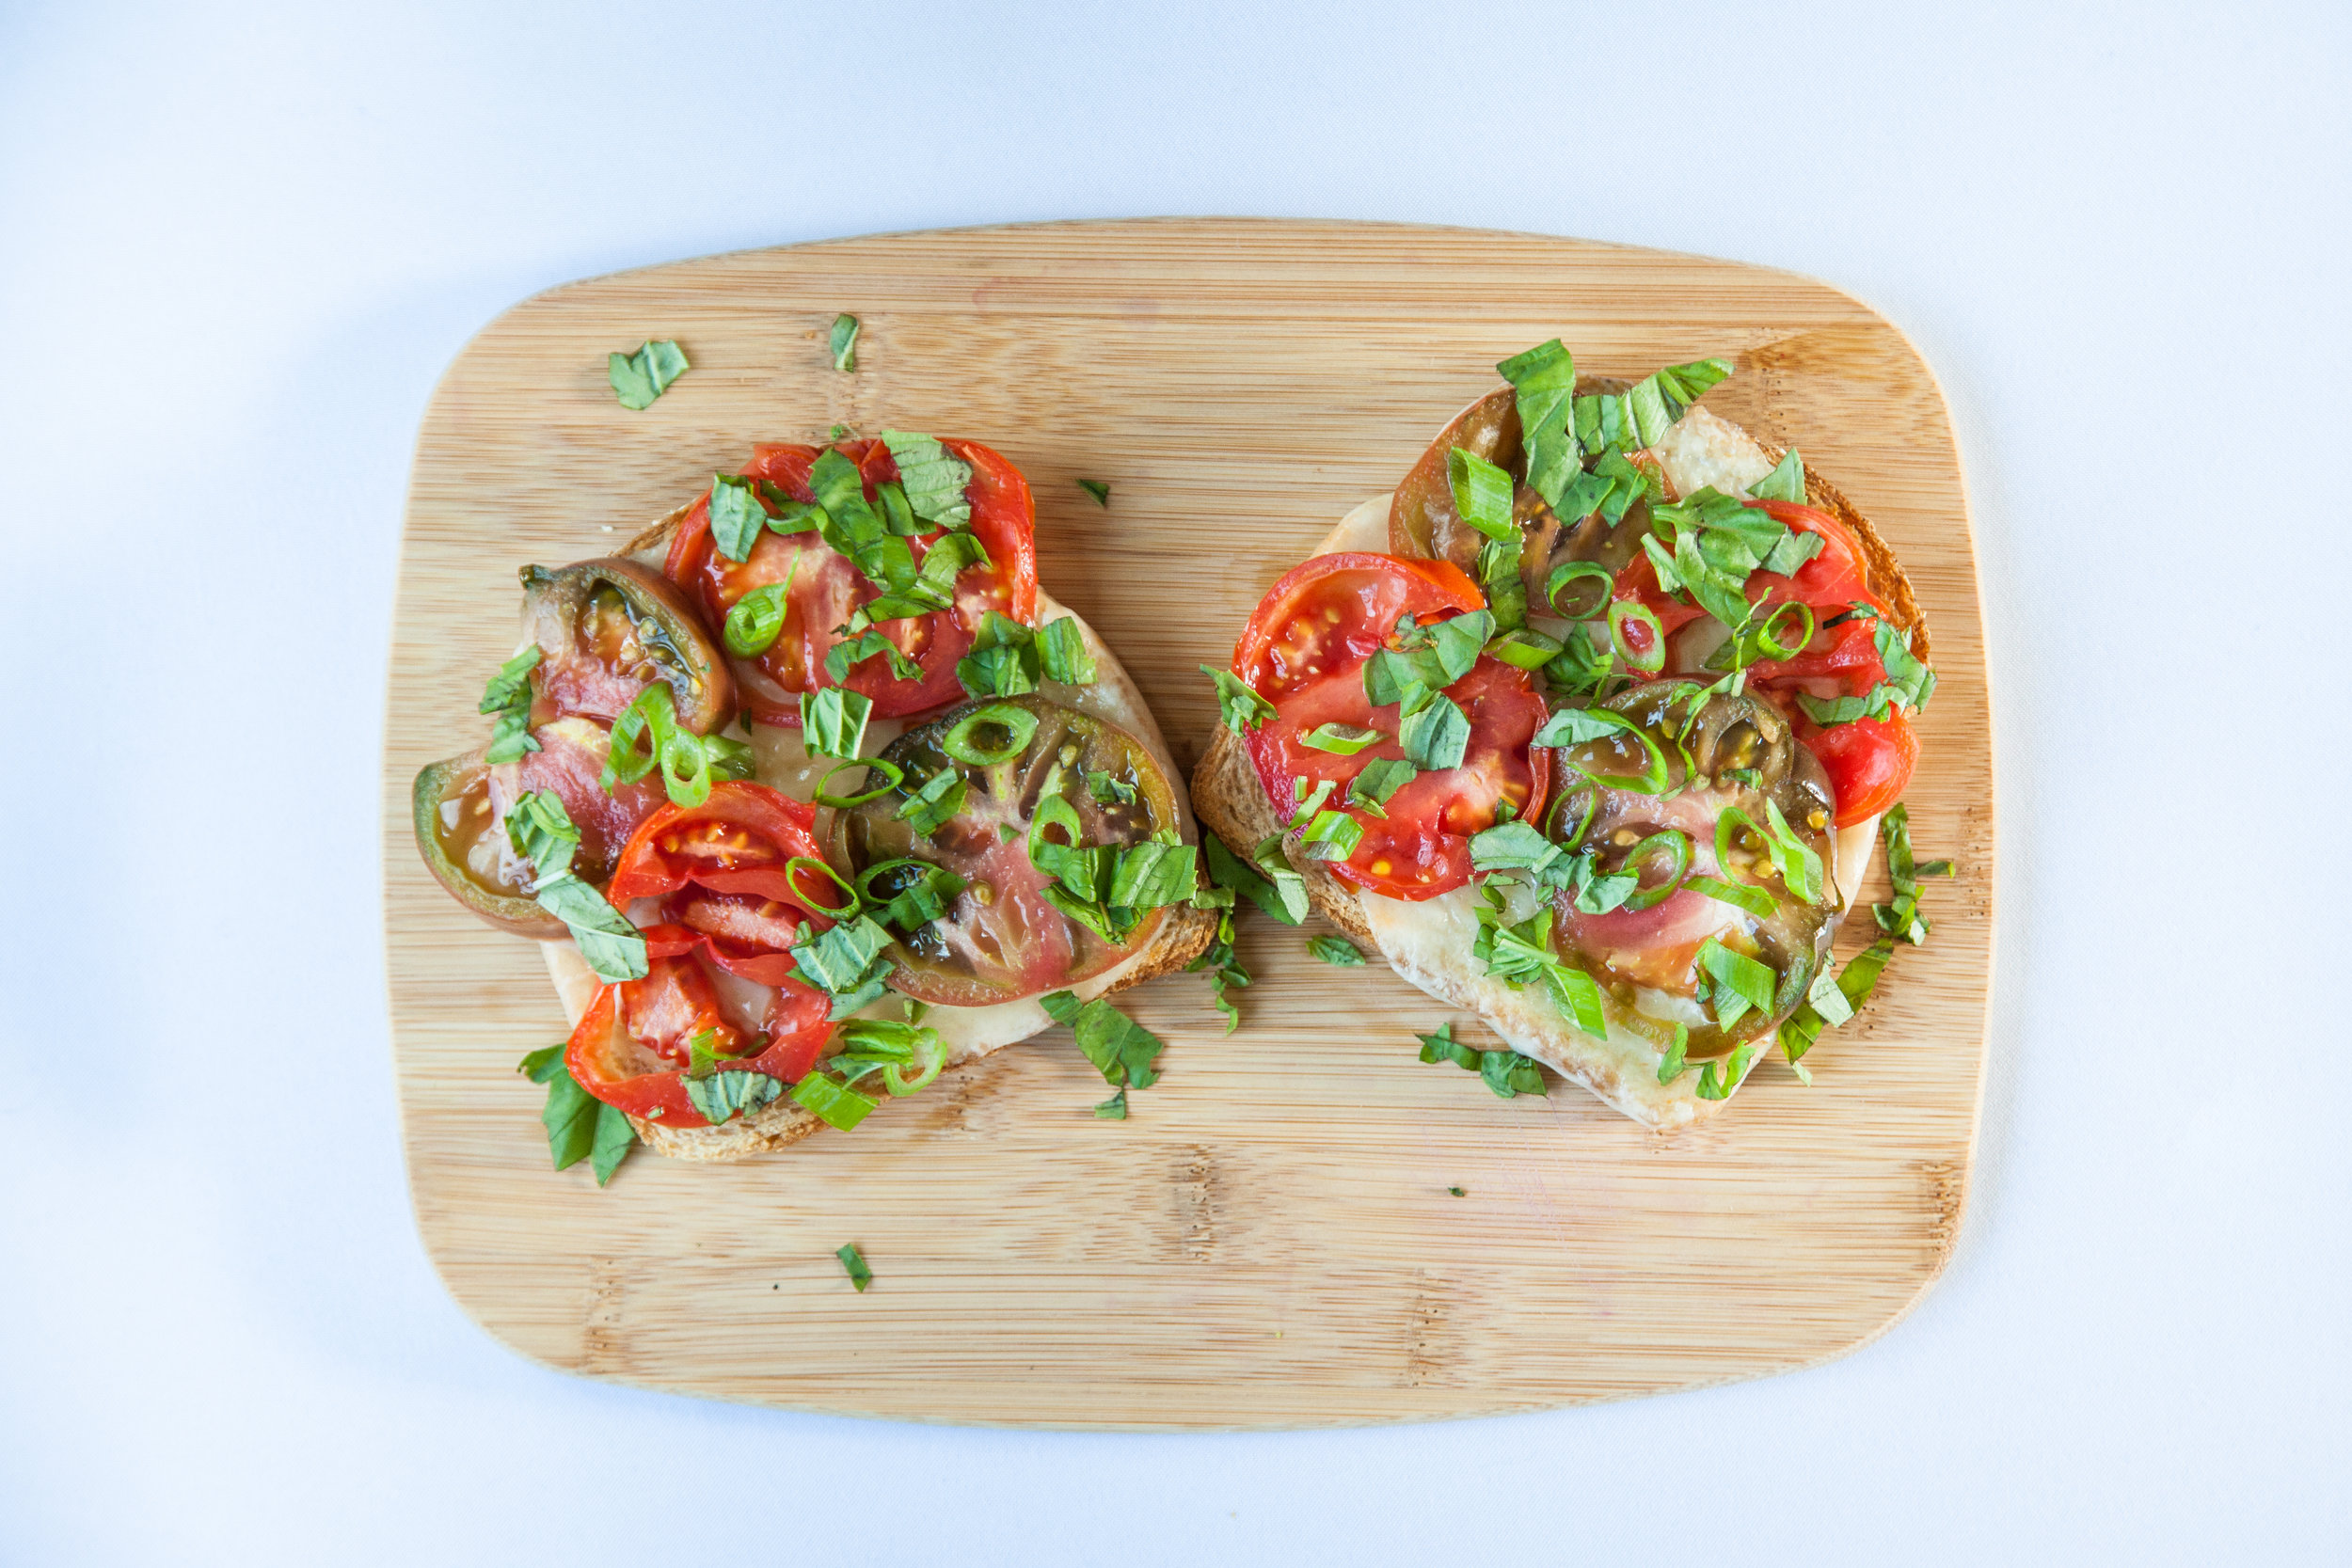 Toast with tomato, provolone, and basil